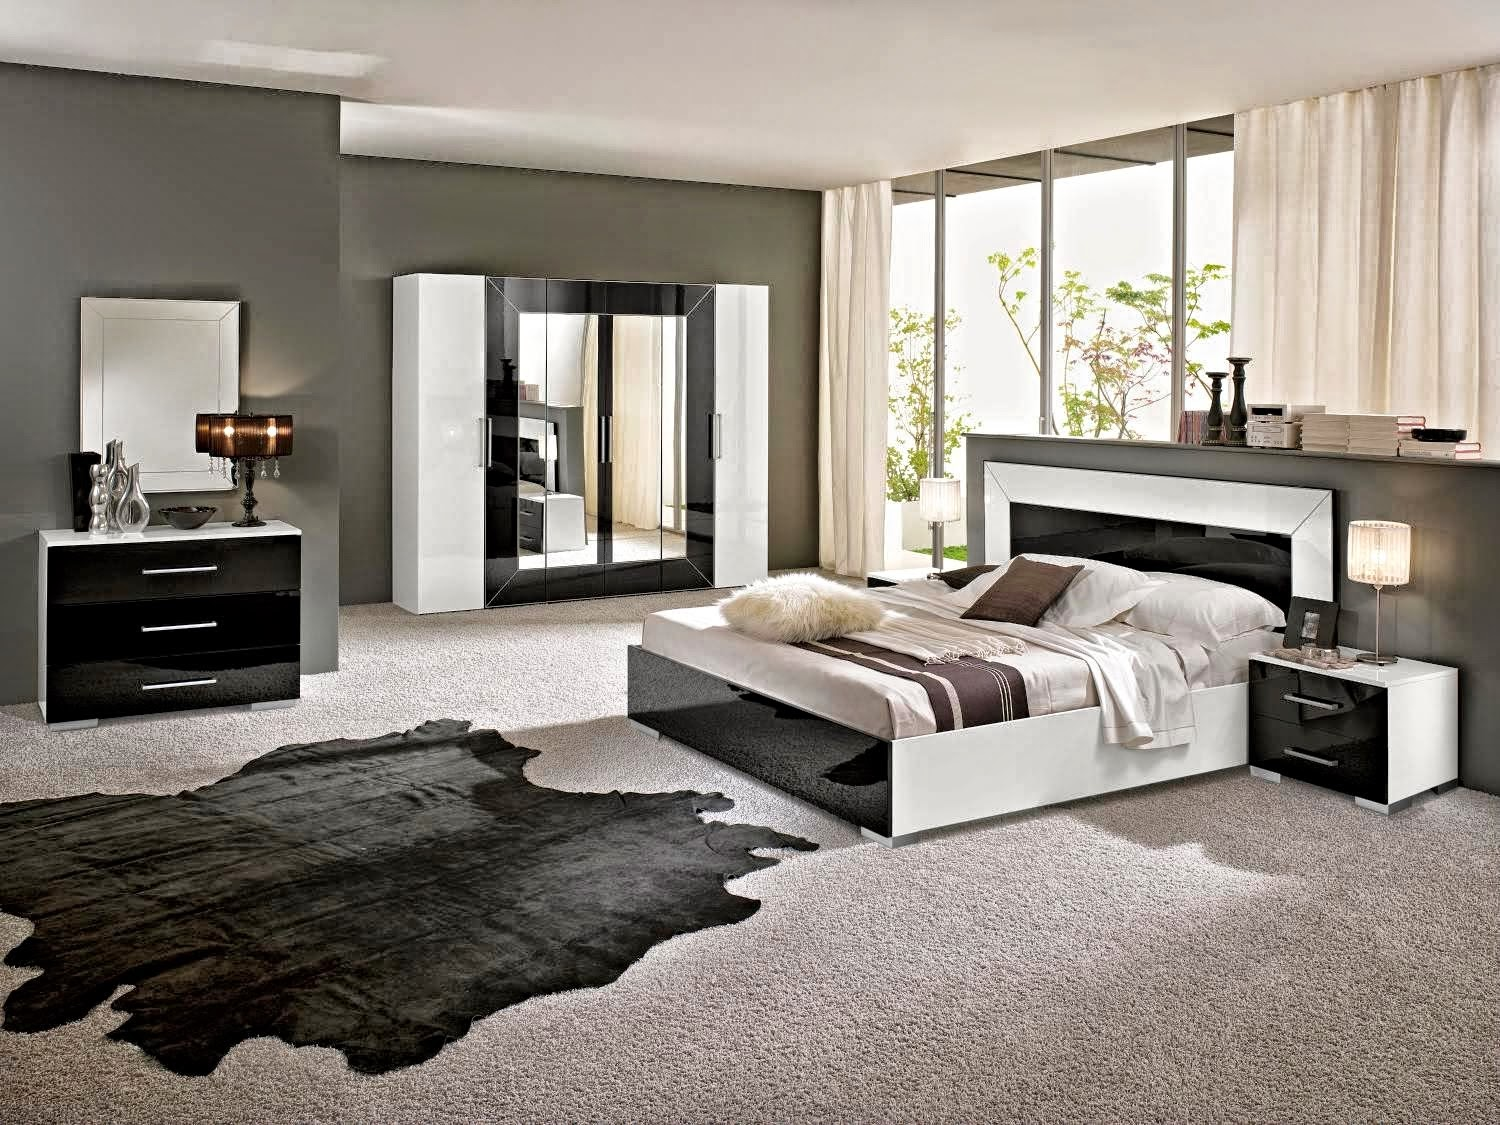 best chambre moderne noir et blanc decoration chambre noir et blanc idees deco pour maison. Black Bedroom Furniture Sets. Home Design Ideas